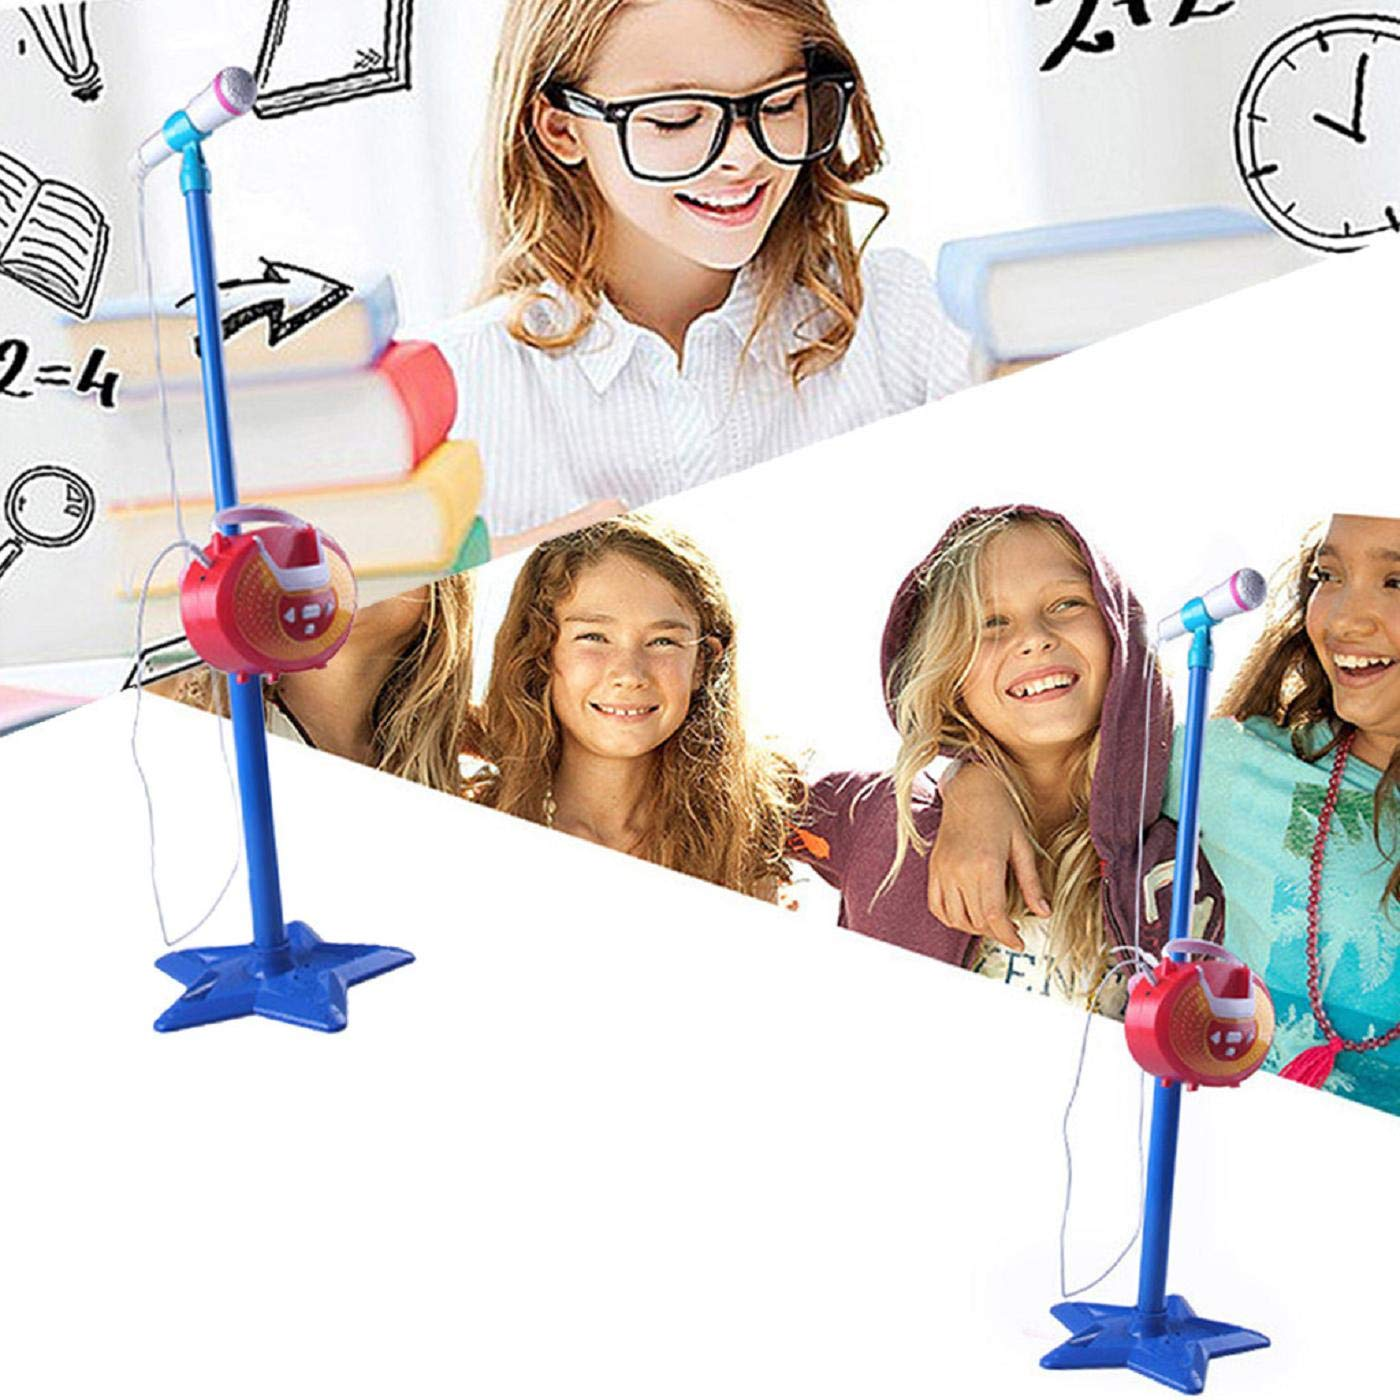 Putars Kids Girls Mp3 KaraokeMicrophone Adjustable Stand Light Sound,Music Sing Along with Flashing Stage Lights and Pedals for Fun,Microphone and Mic Stand - Online Exclusive by Putars toy (Image #5)